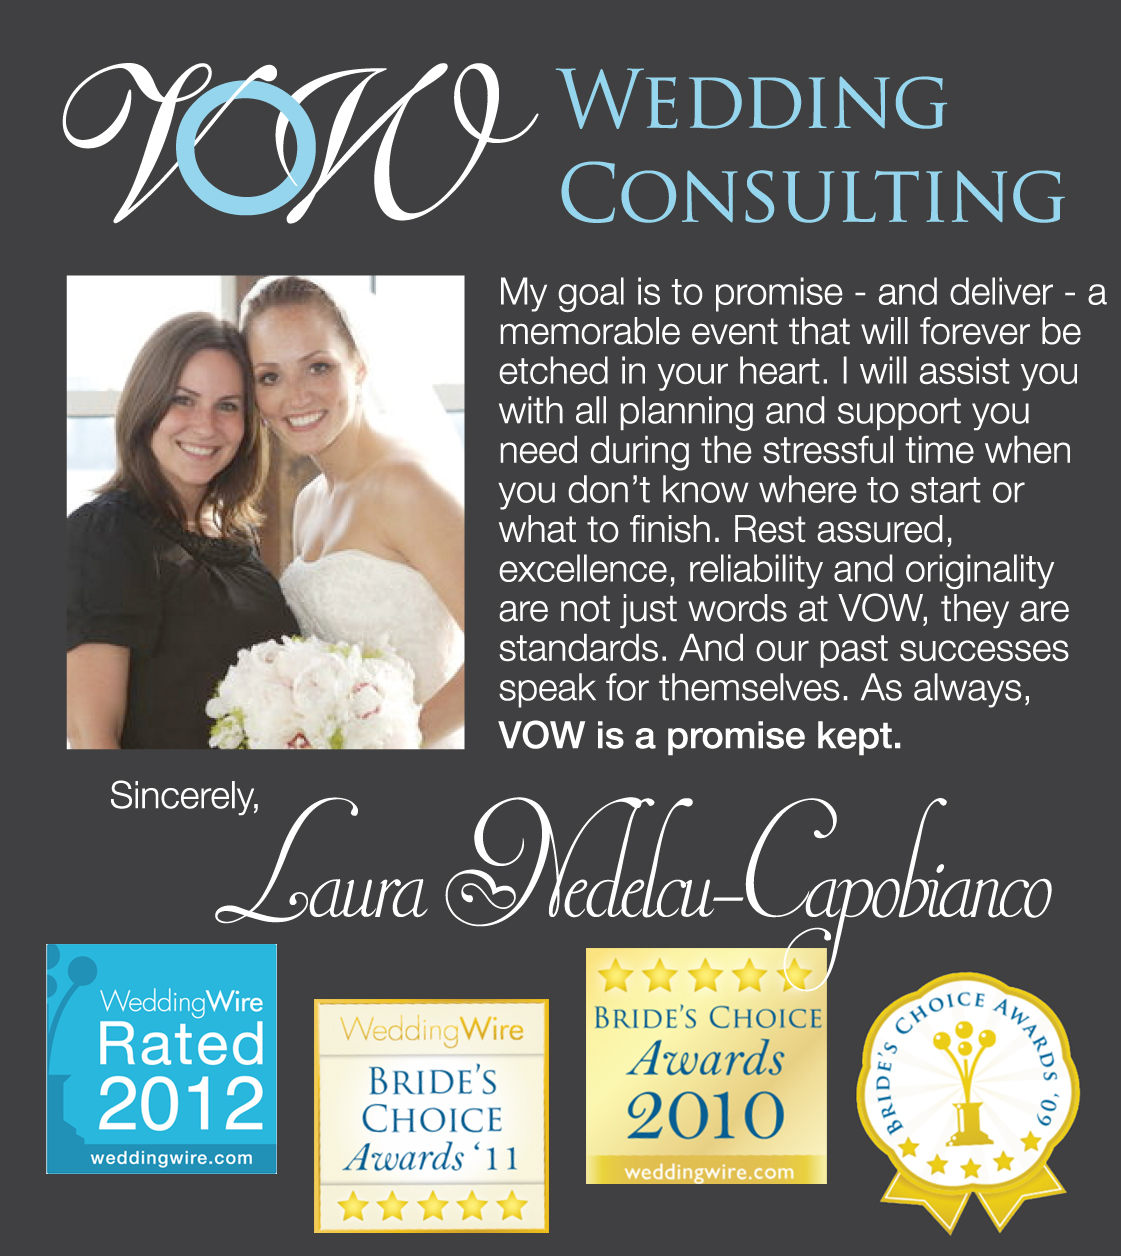 Owner Of VOW Wedding Consulting Creator We To Inspire A Blog Ive Worked On Weddings Since 2004 And All I Can Say Is Its